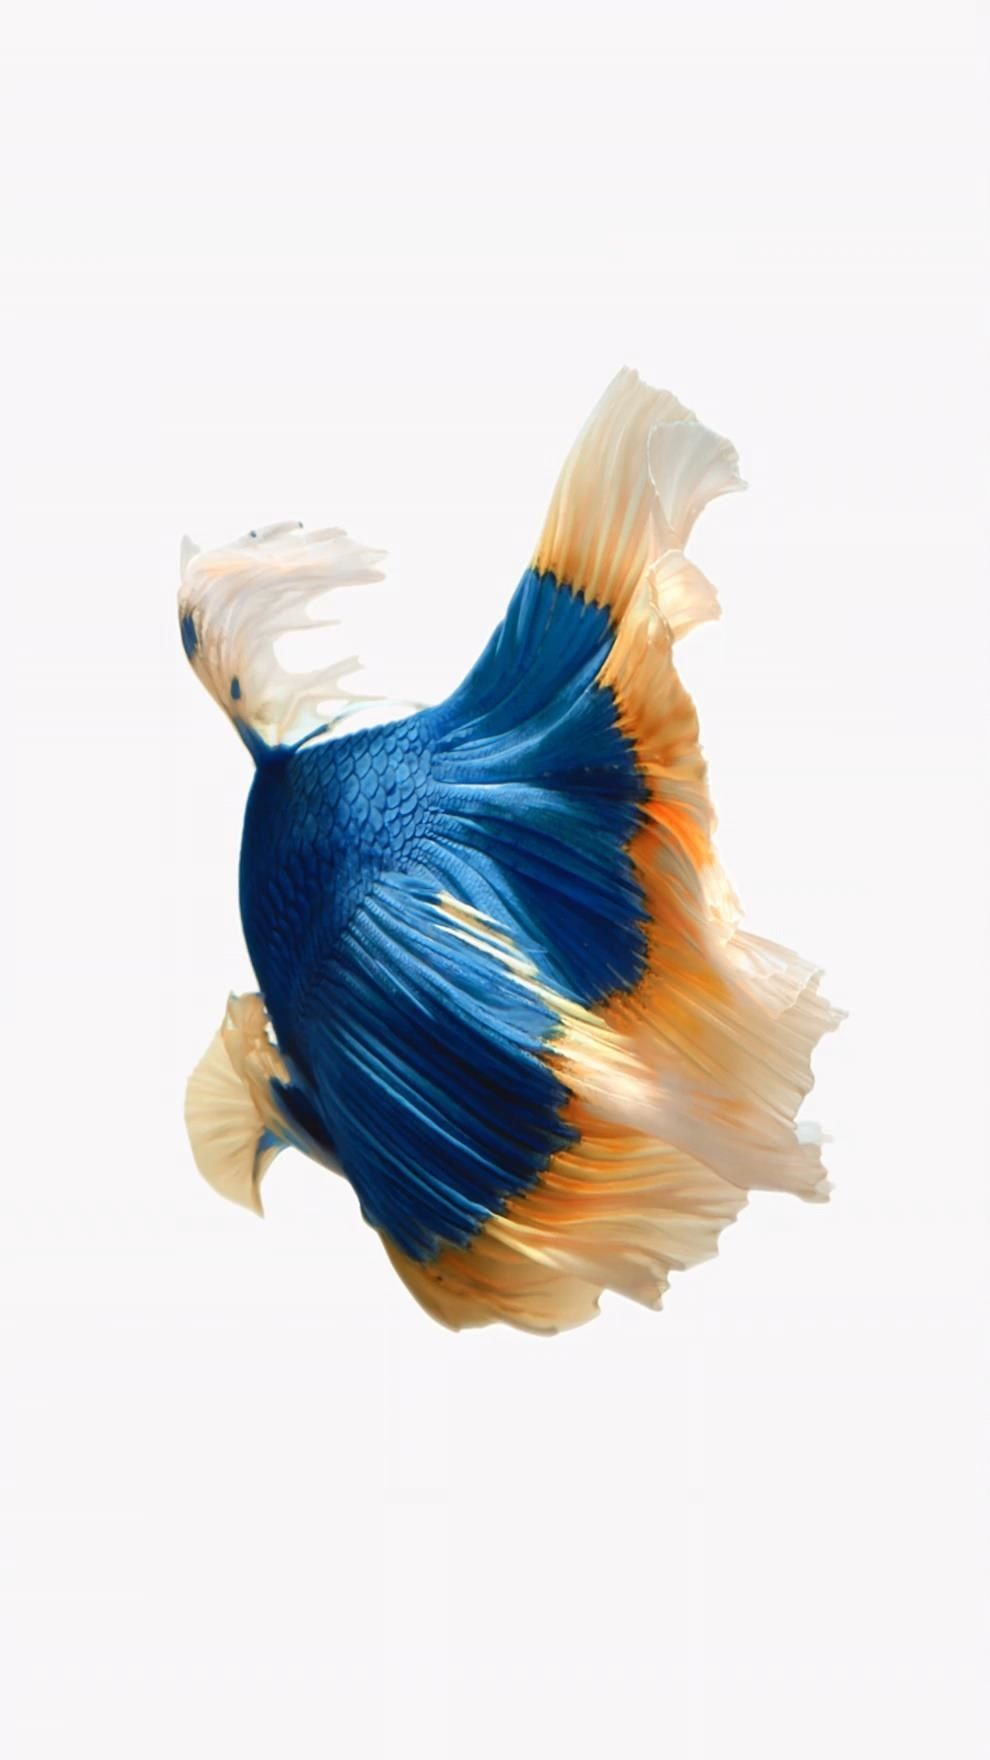 In The Latest Beta For Ios 11 Apple Removed The Live Fish Wallpapers From The Iphone So You C Live Fish Wallpaper Iphone 6s Wallpaper Live Wallpaper Iphone 7